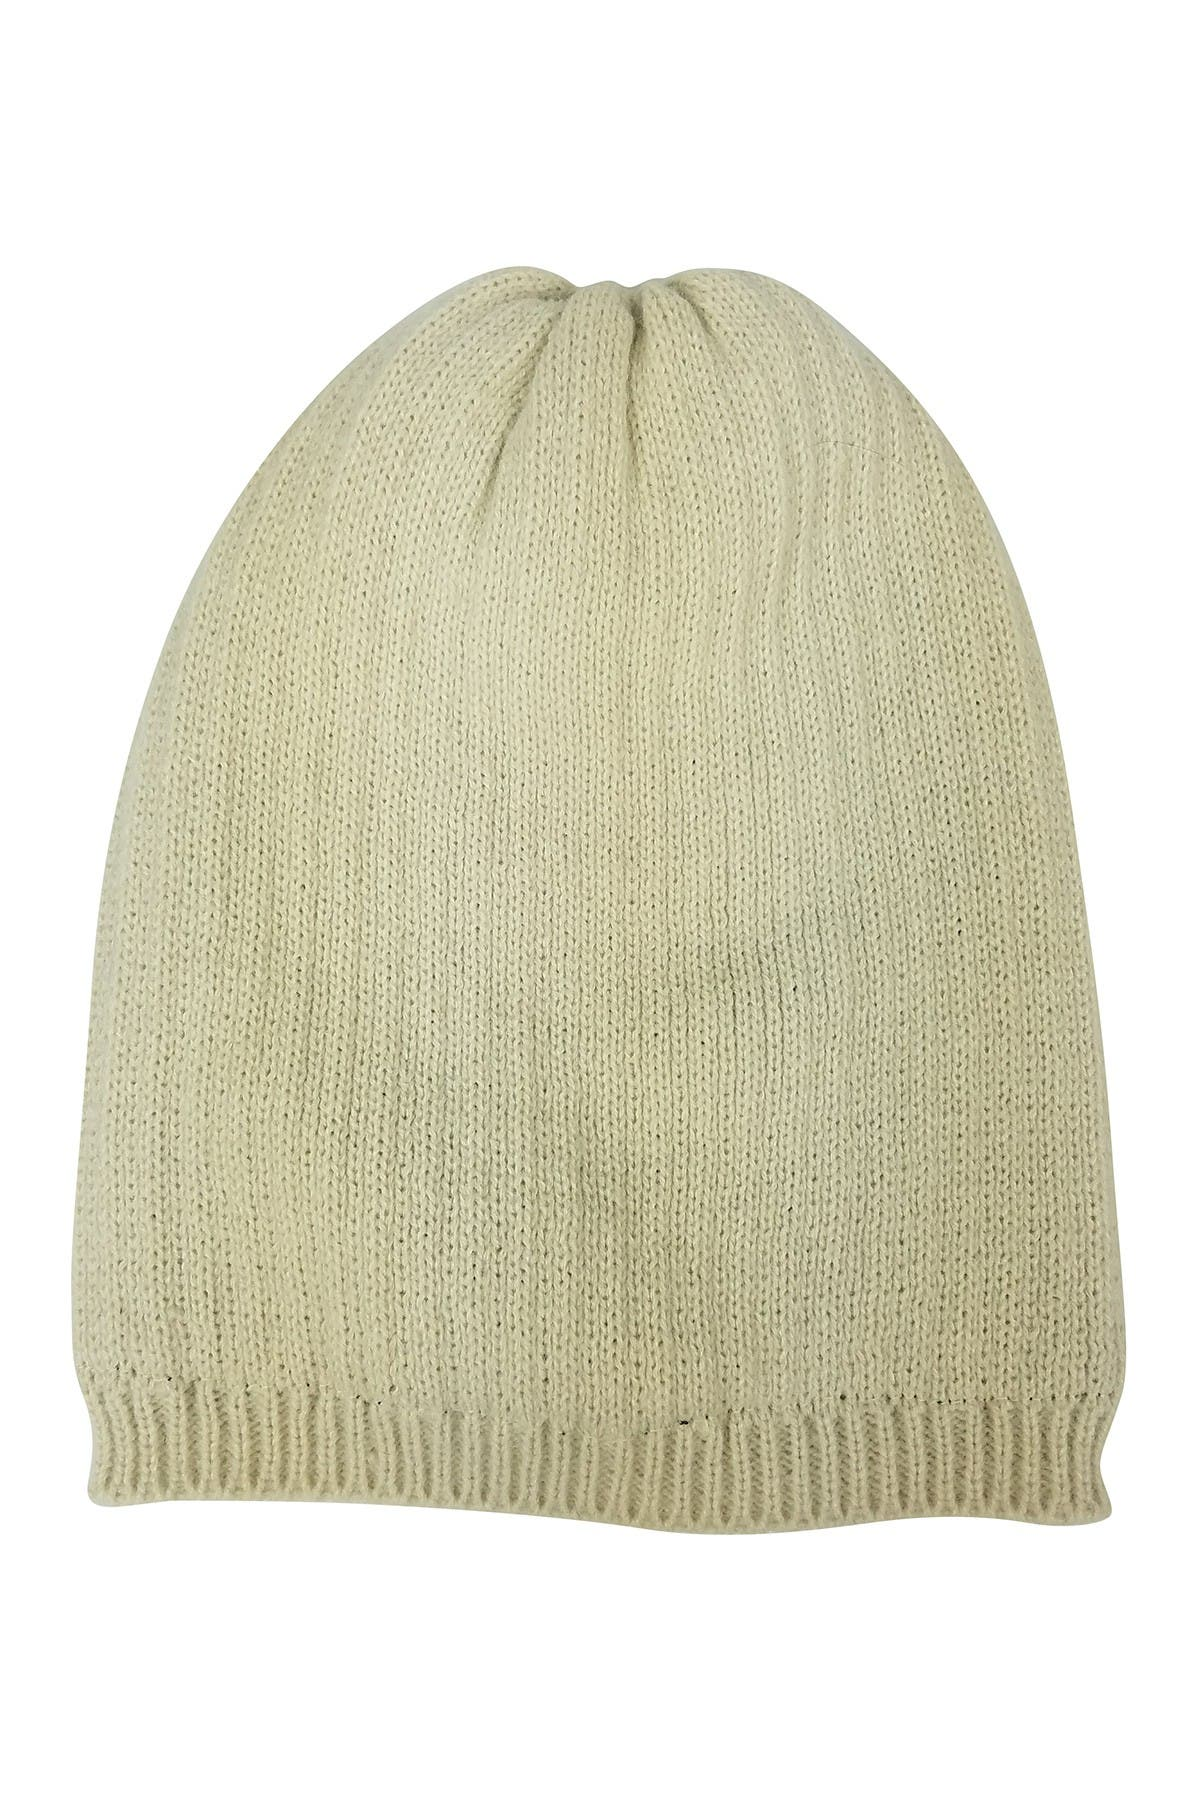 Image of Hat Attack Cozy Faux Fur Lined Beanie